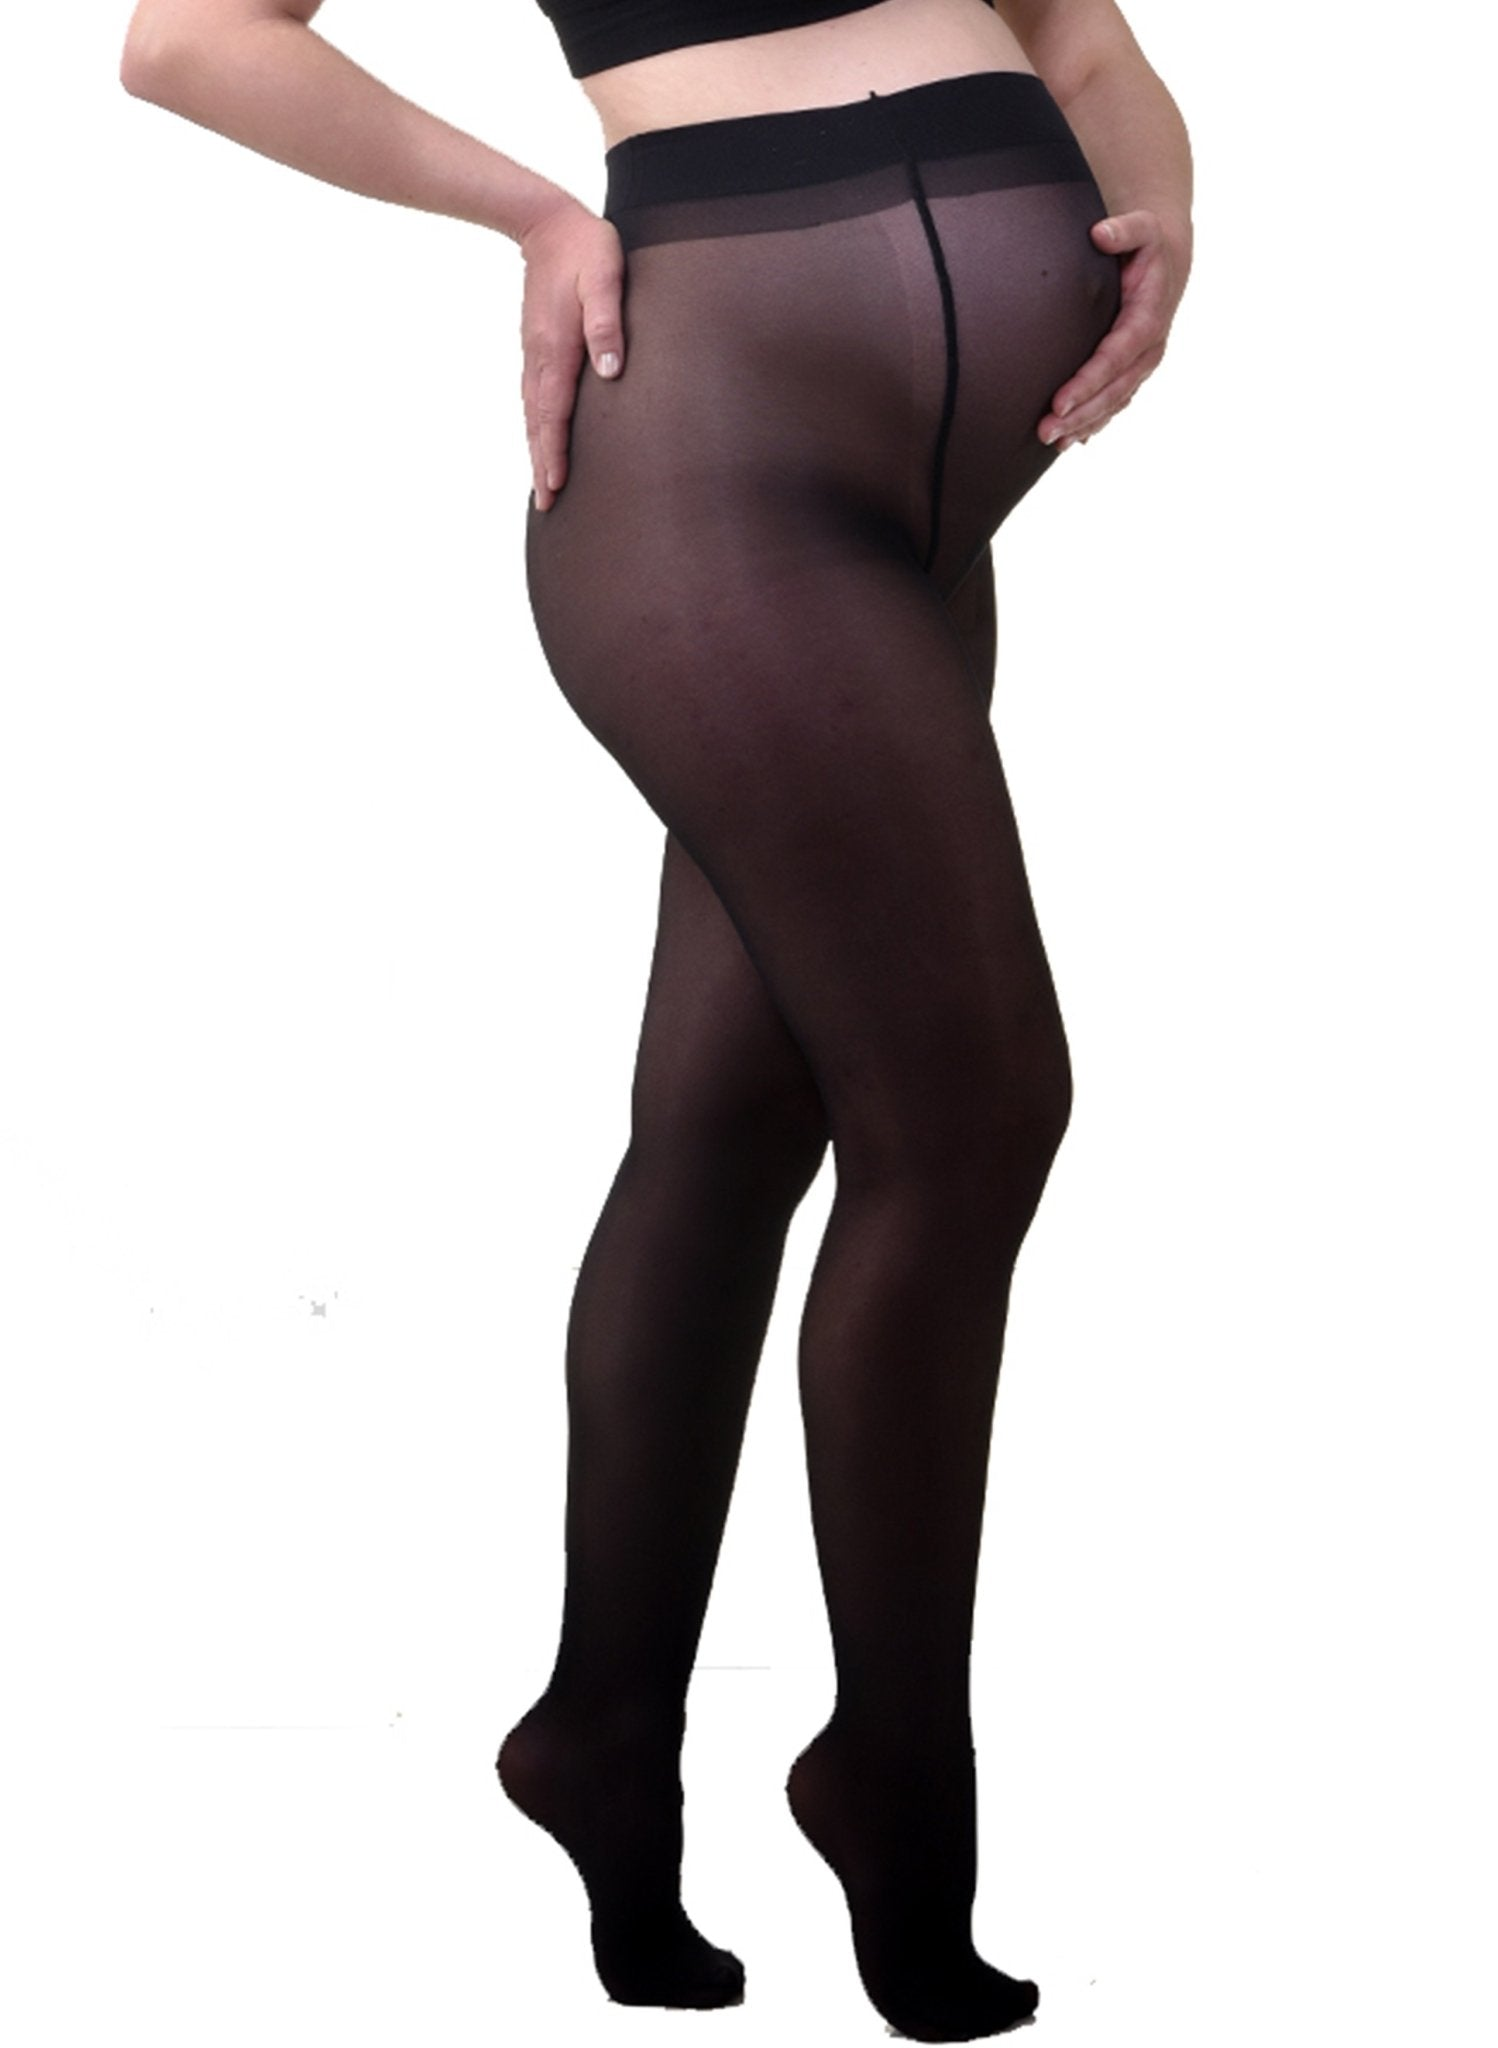 20Den Maternity Tights - Black - Mums and Bumps